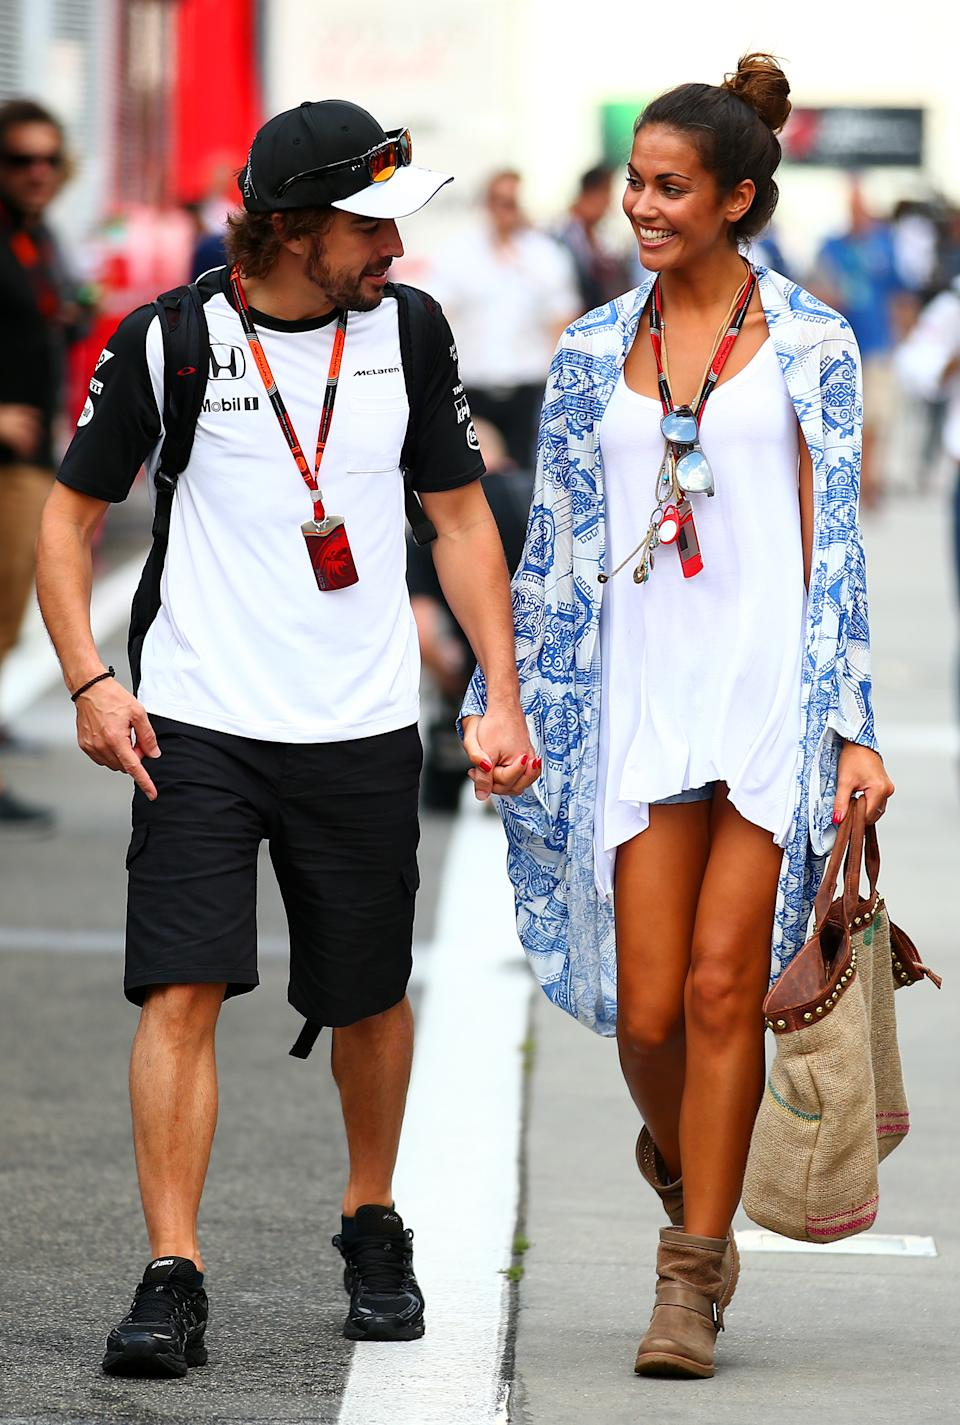 BUDAPEST, HUNGARY - JULY 25:  Fernando Alonso of Spain and McLaren Honda and his girlfriend Lara Alvarez walk in the paddock after qualifying for the Formula One Grand Prix of Hungary at Hungaroring on July 25, 2015 in Budapest, Hungary.  (Photo by Mark Thompson/Getty Images)